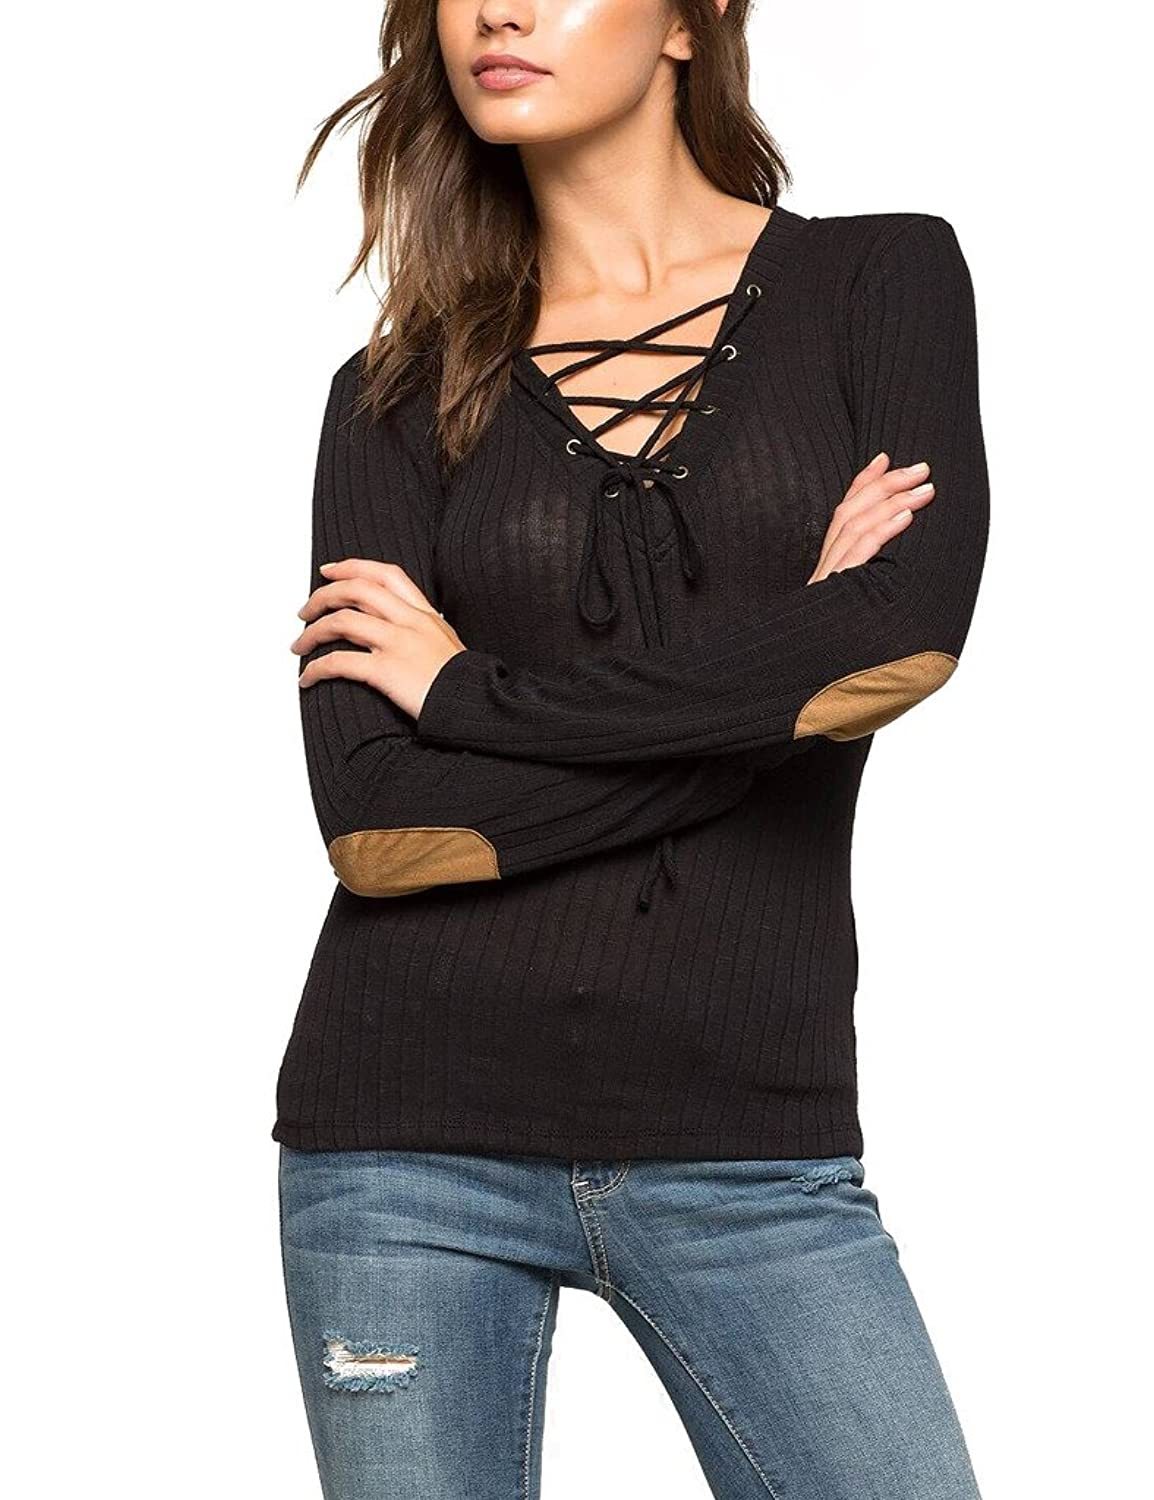 Choco Mocha Women's Sexy Bandage Fashion Elbow Patch Knitted Sweaters